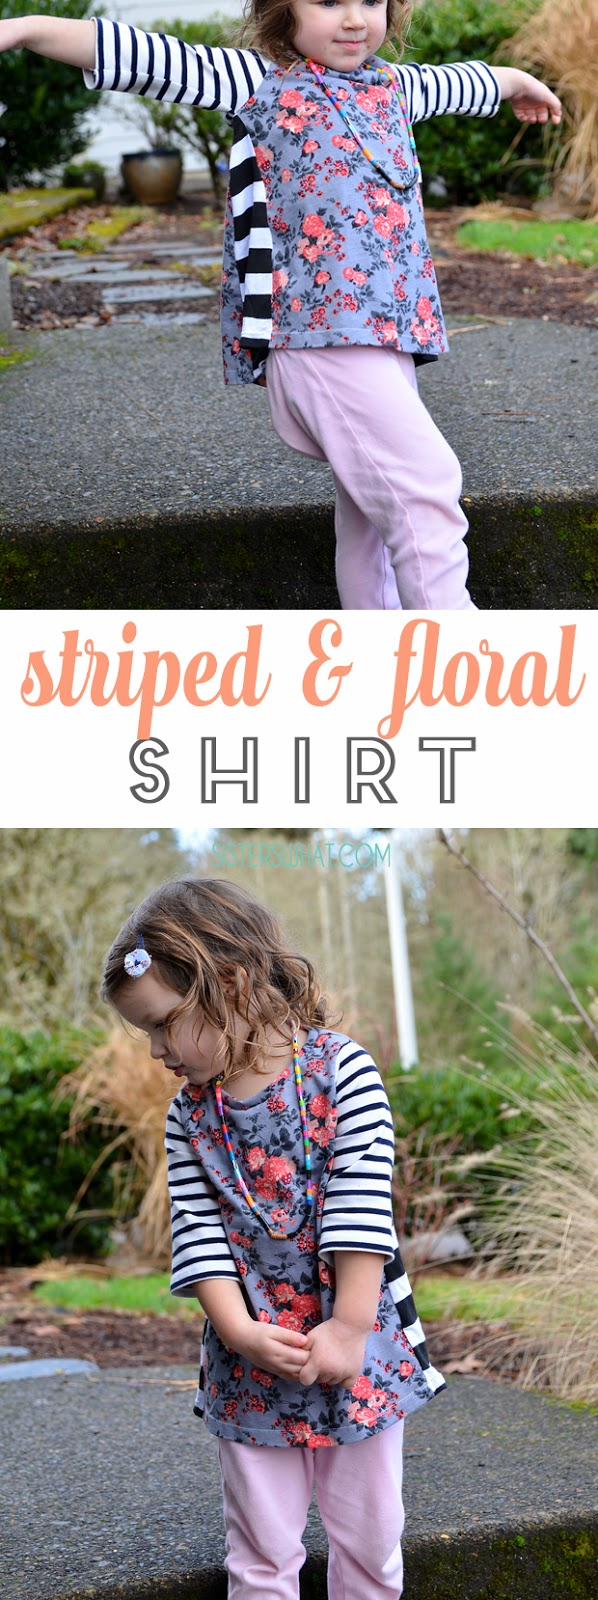 striped shirt and floral shirts!! such an easy shirt refashion! simply cut off an old shirt sleeves and add new sleeves with a different pattern fabric!!